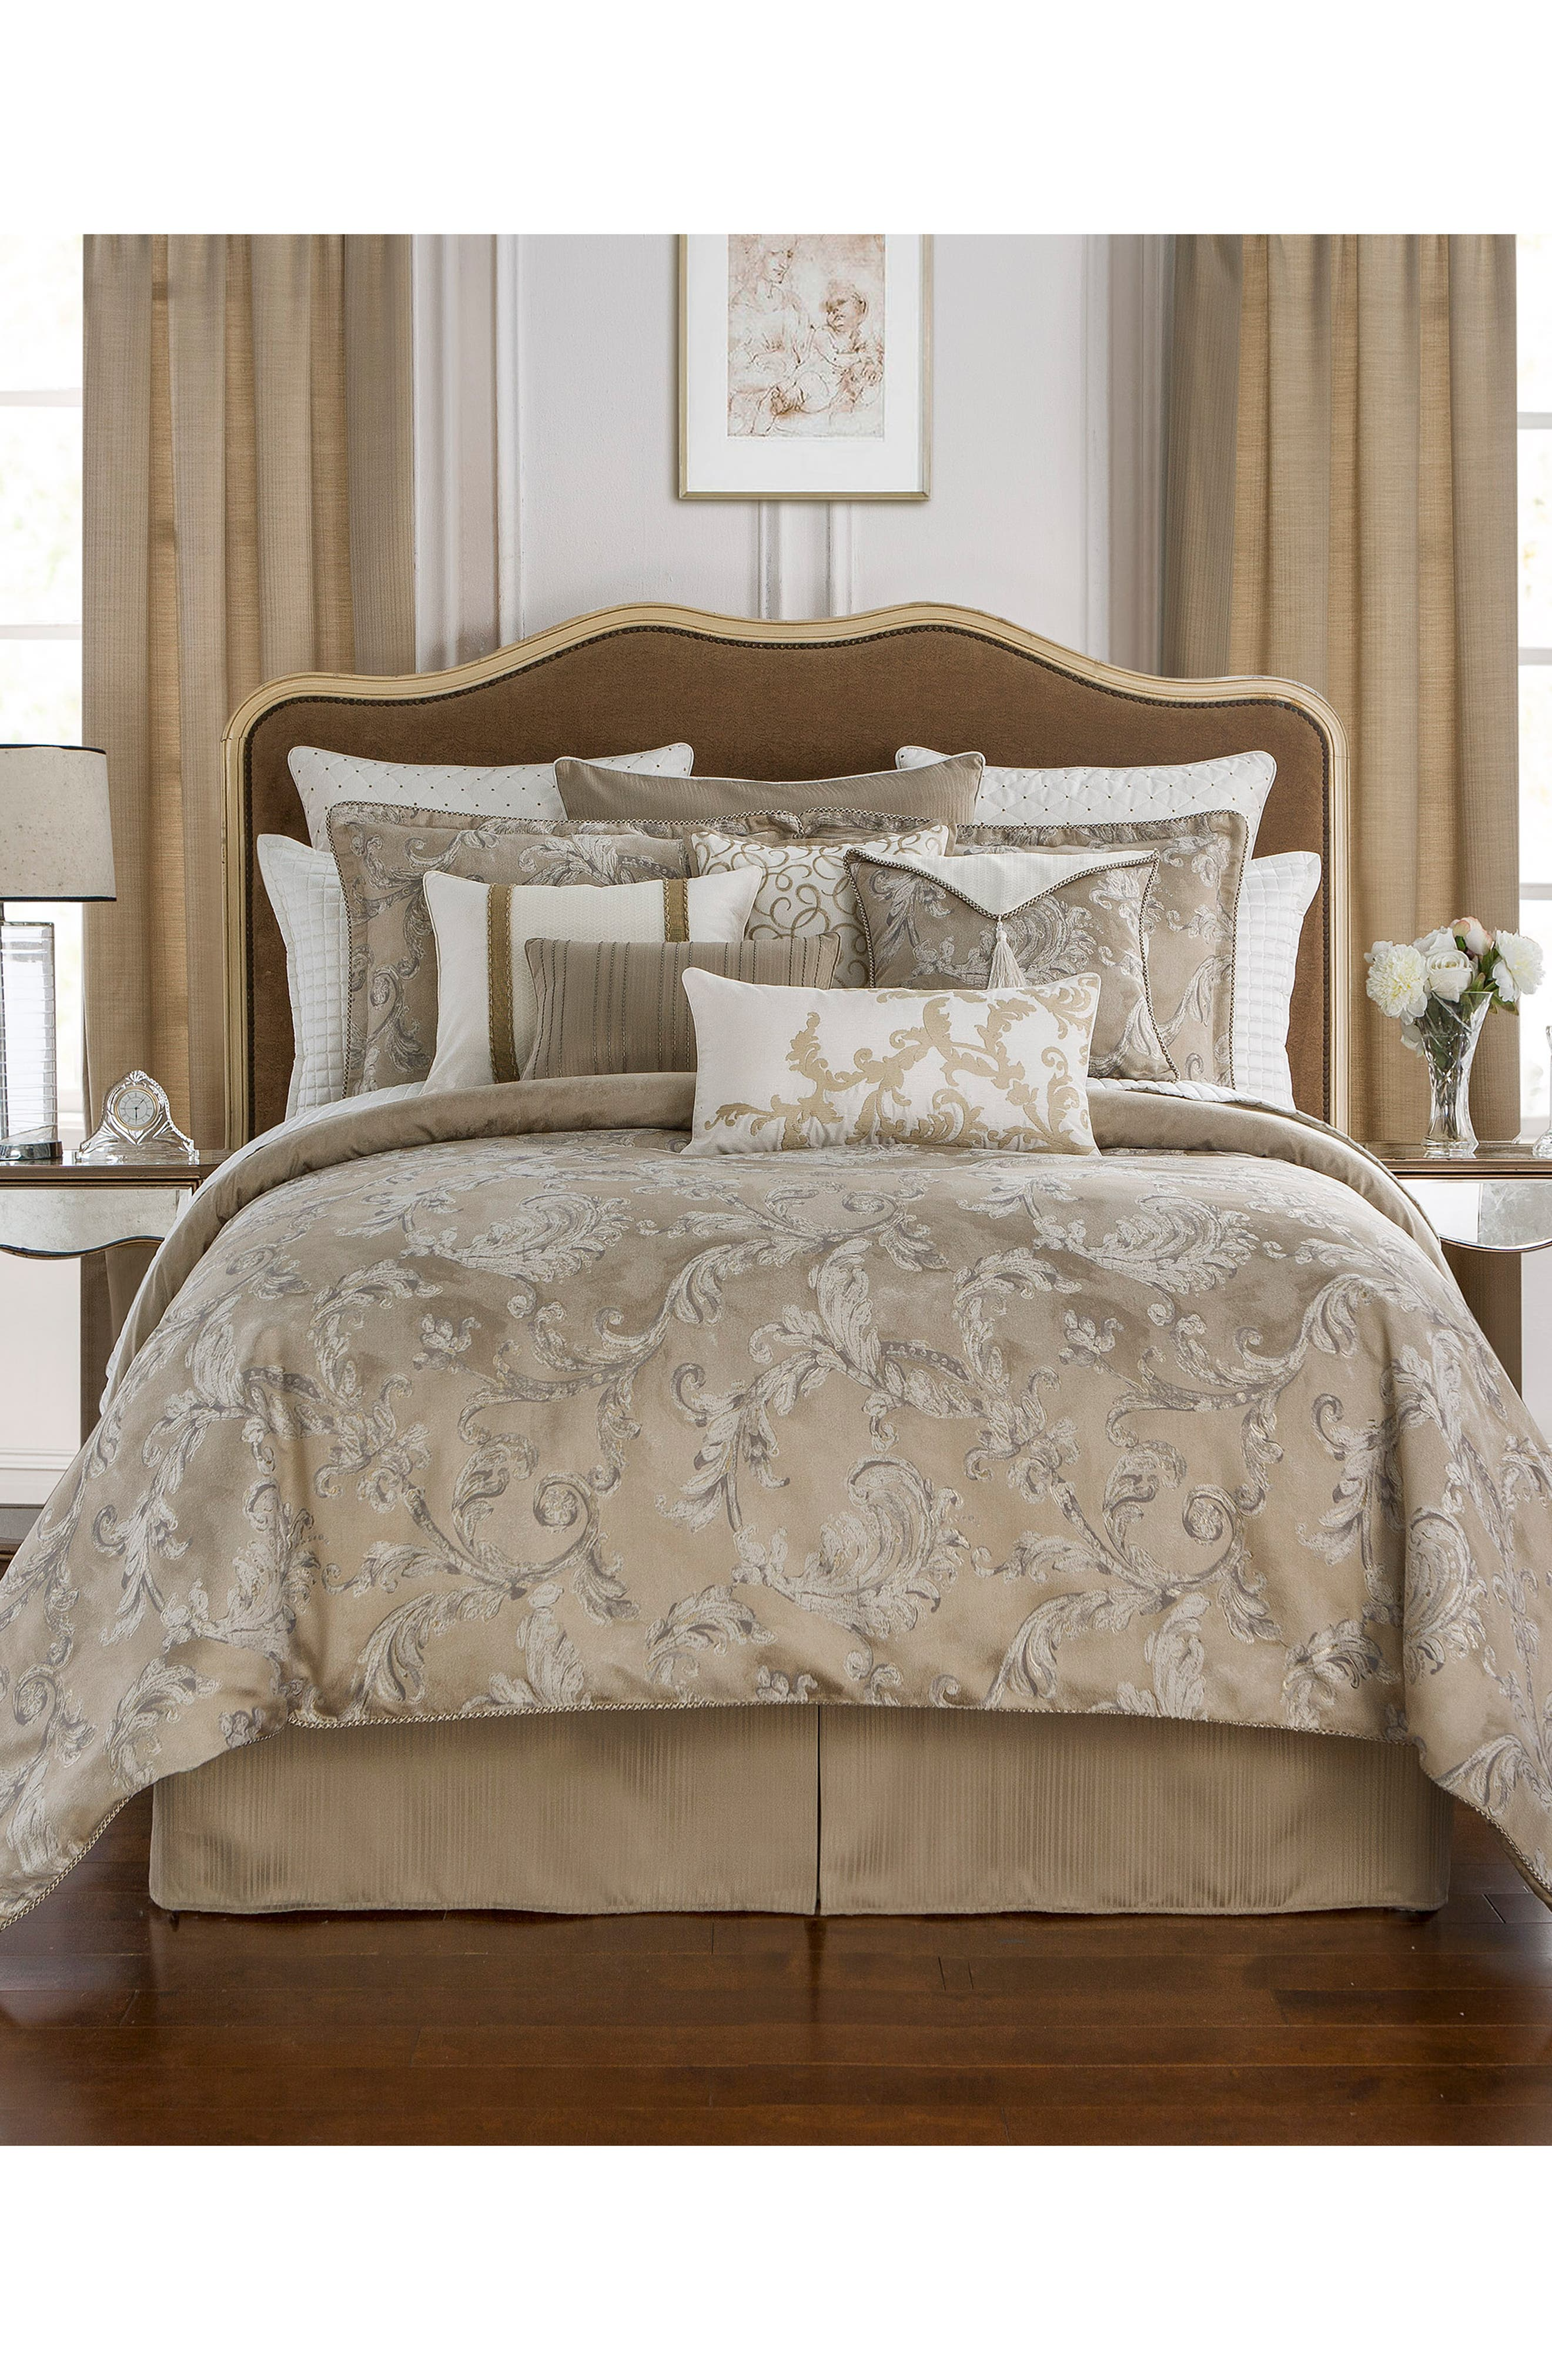 Waterford Chantelle Reversible Comforter, Sham U0026 Bed Skirt Set